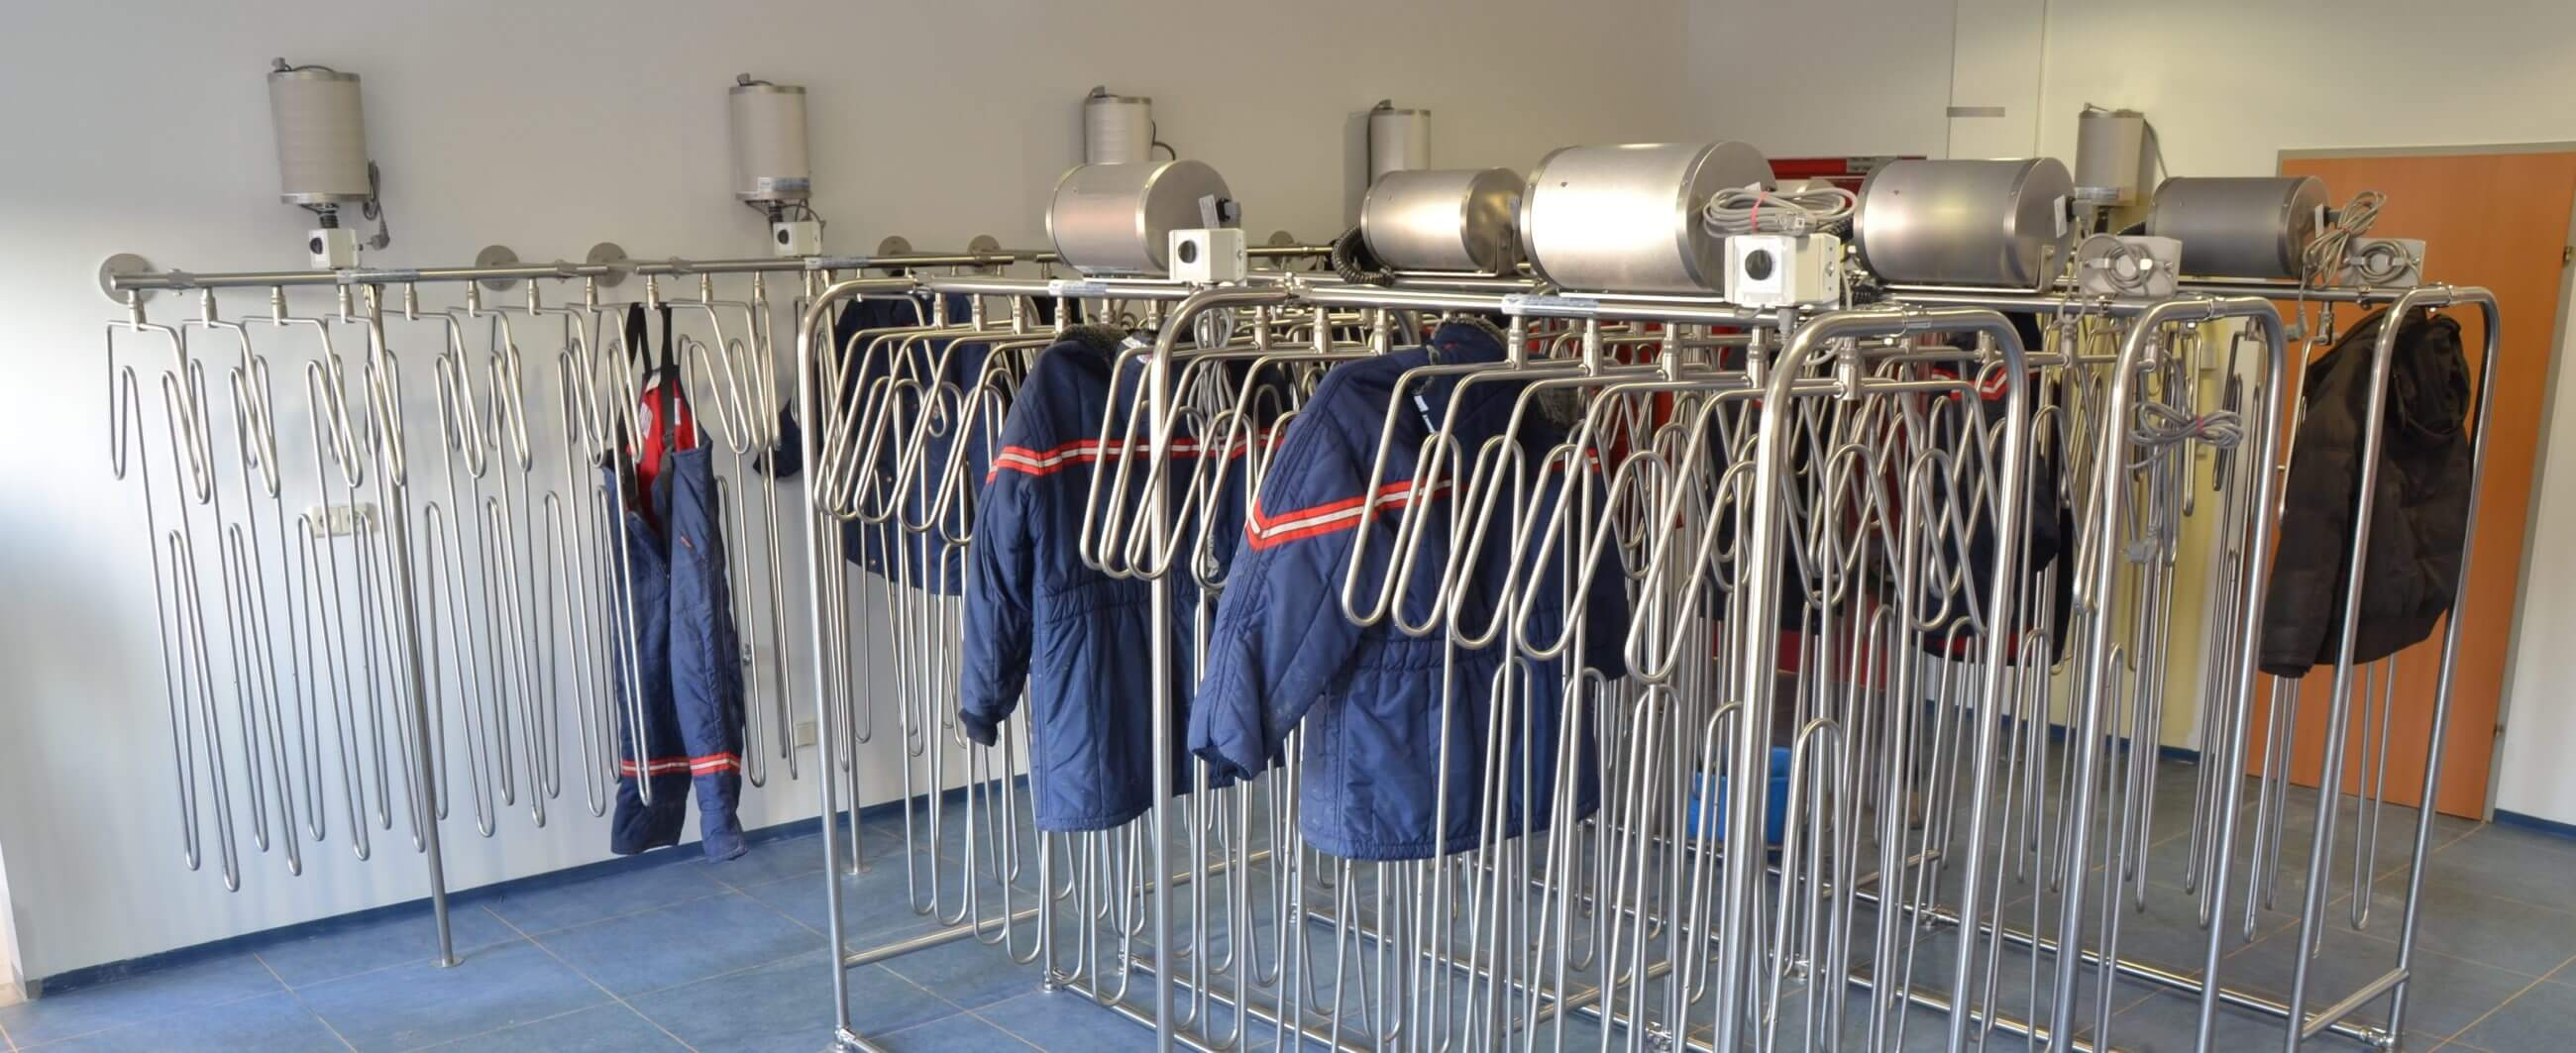 drying system for thermal clothing and splash suits in cold stores and freezer rooms